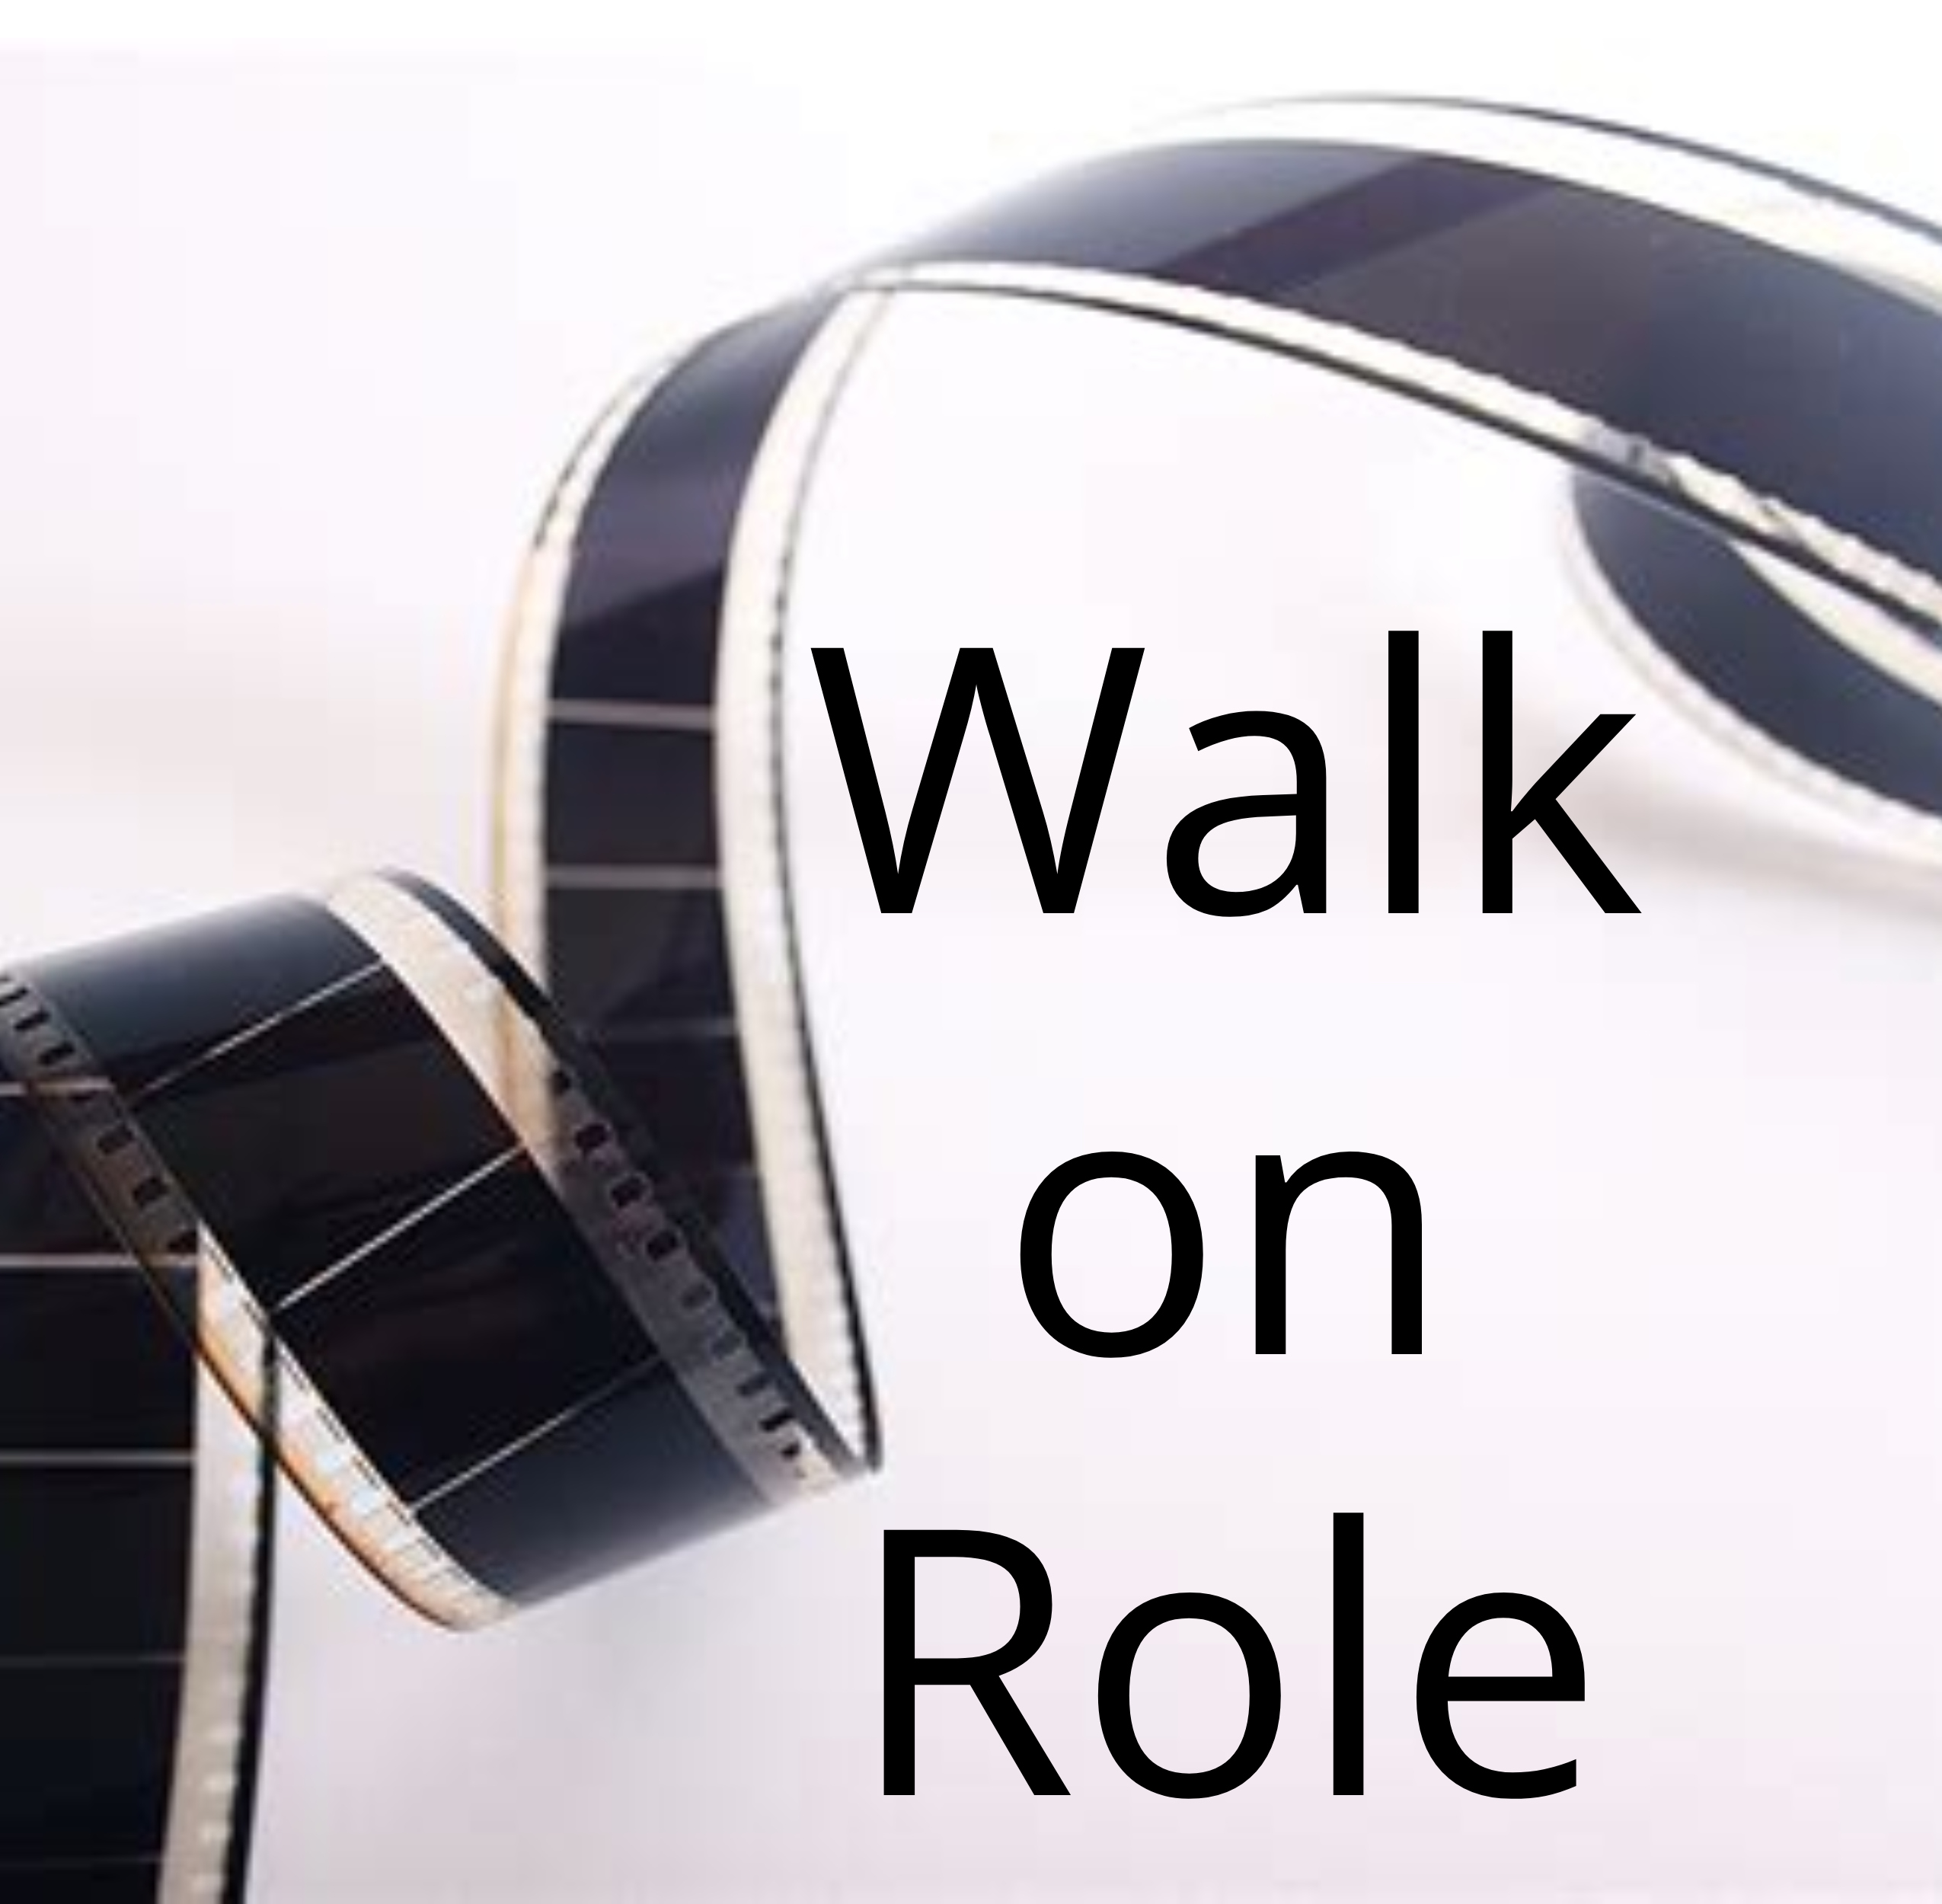 Walk on role square tape